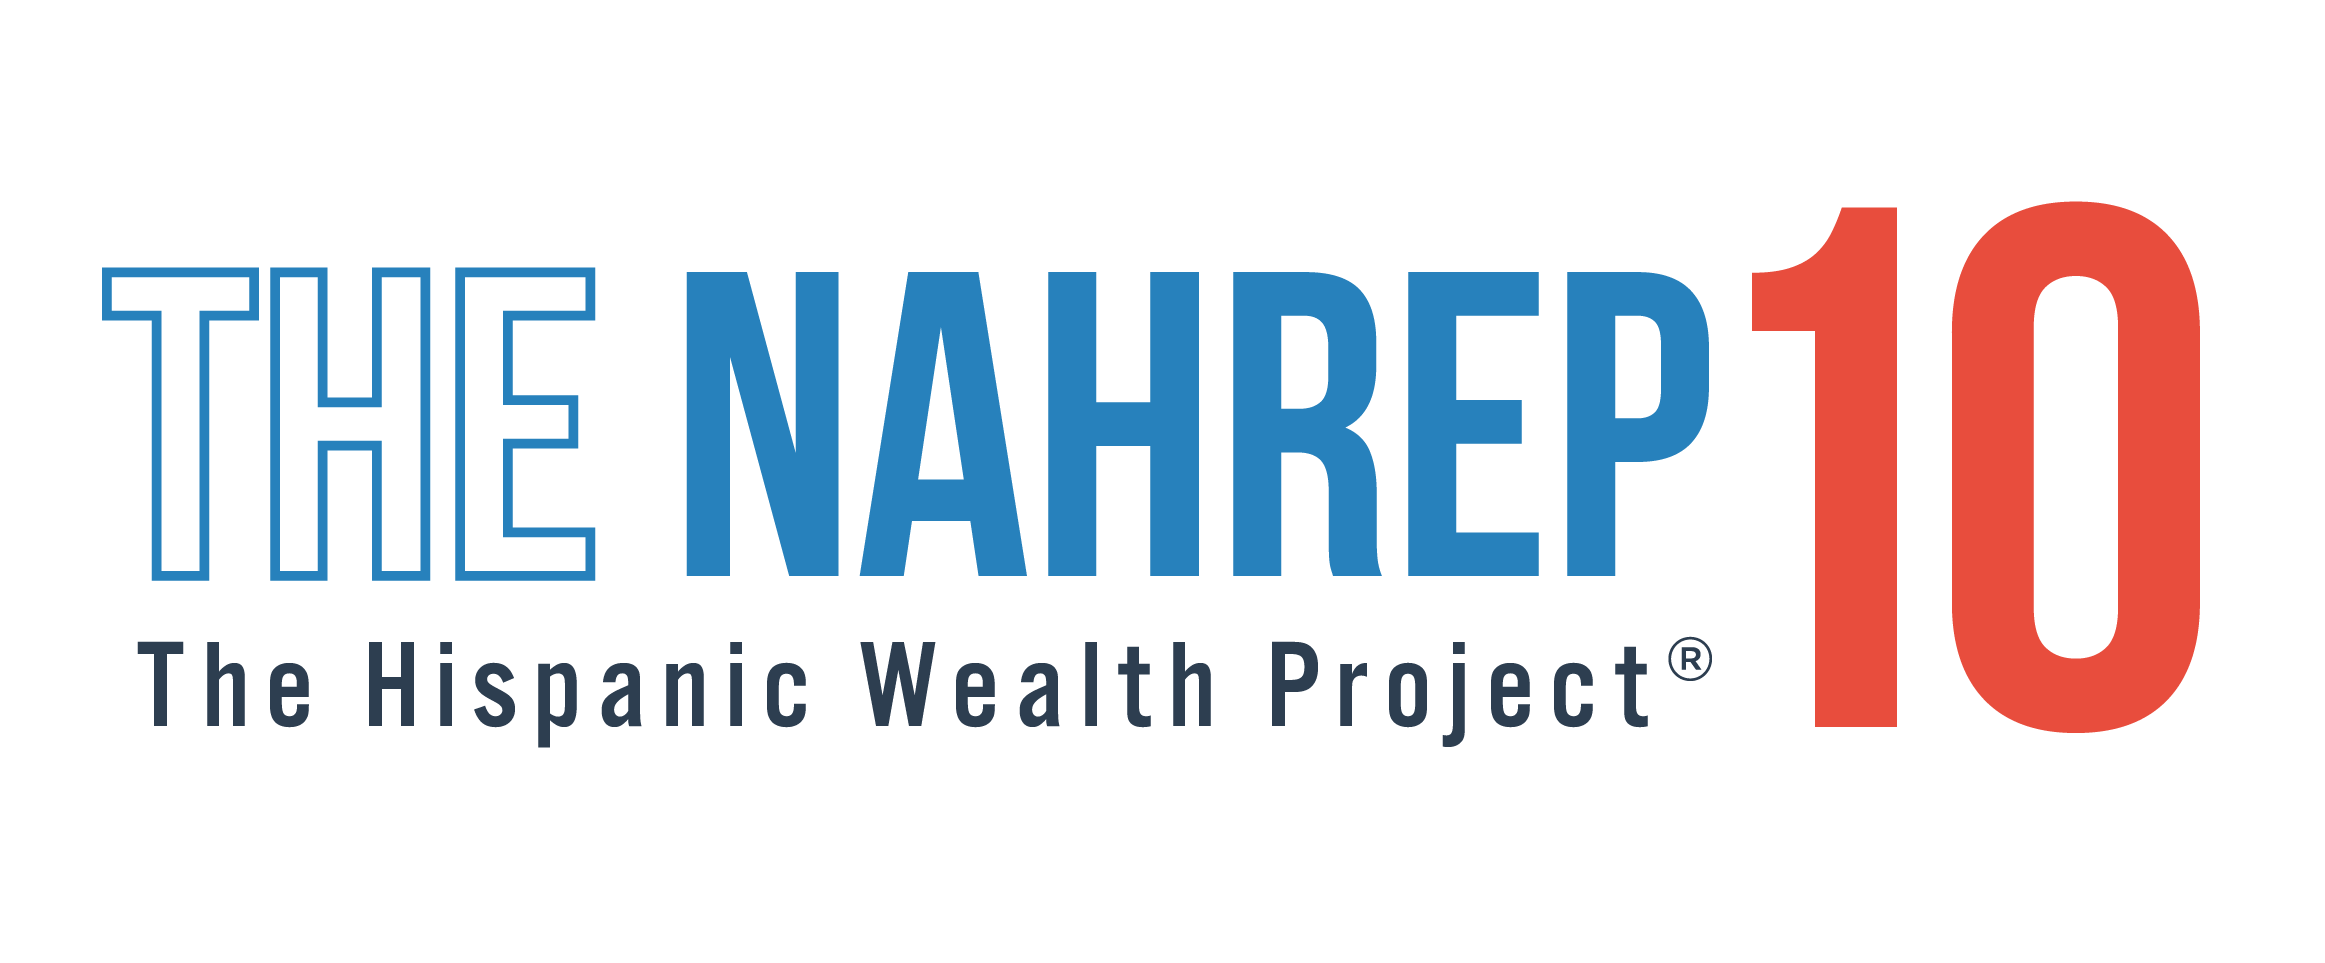 NAHREP – The Hispanic Wealth Project